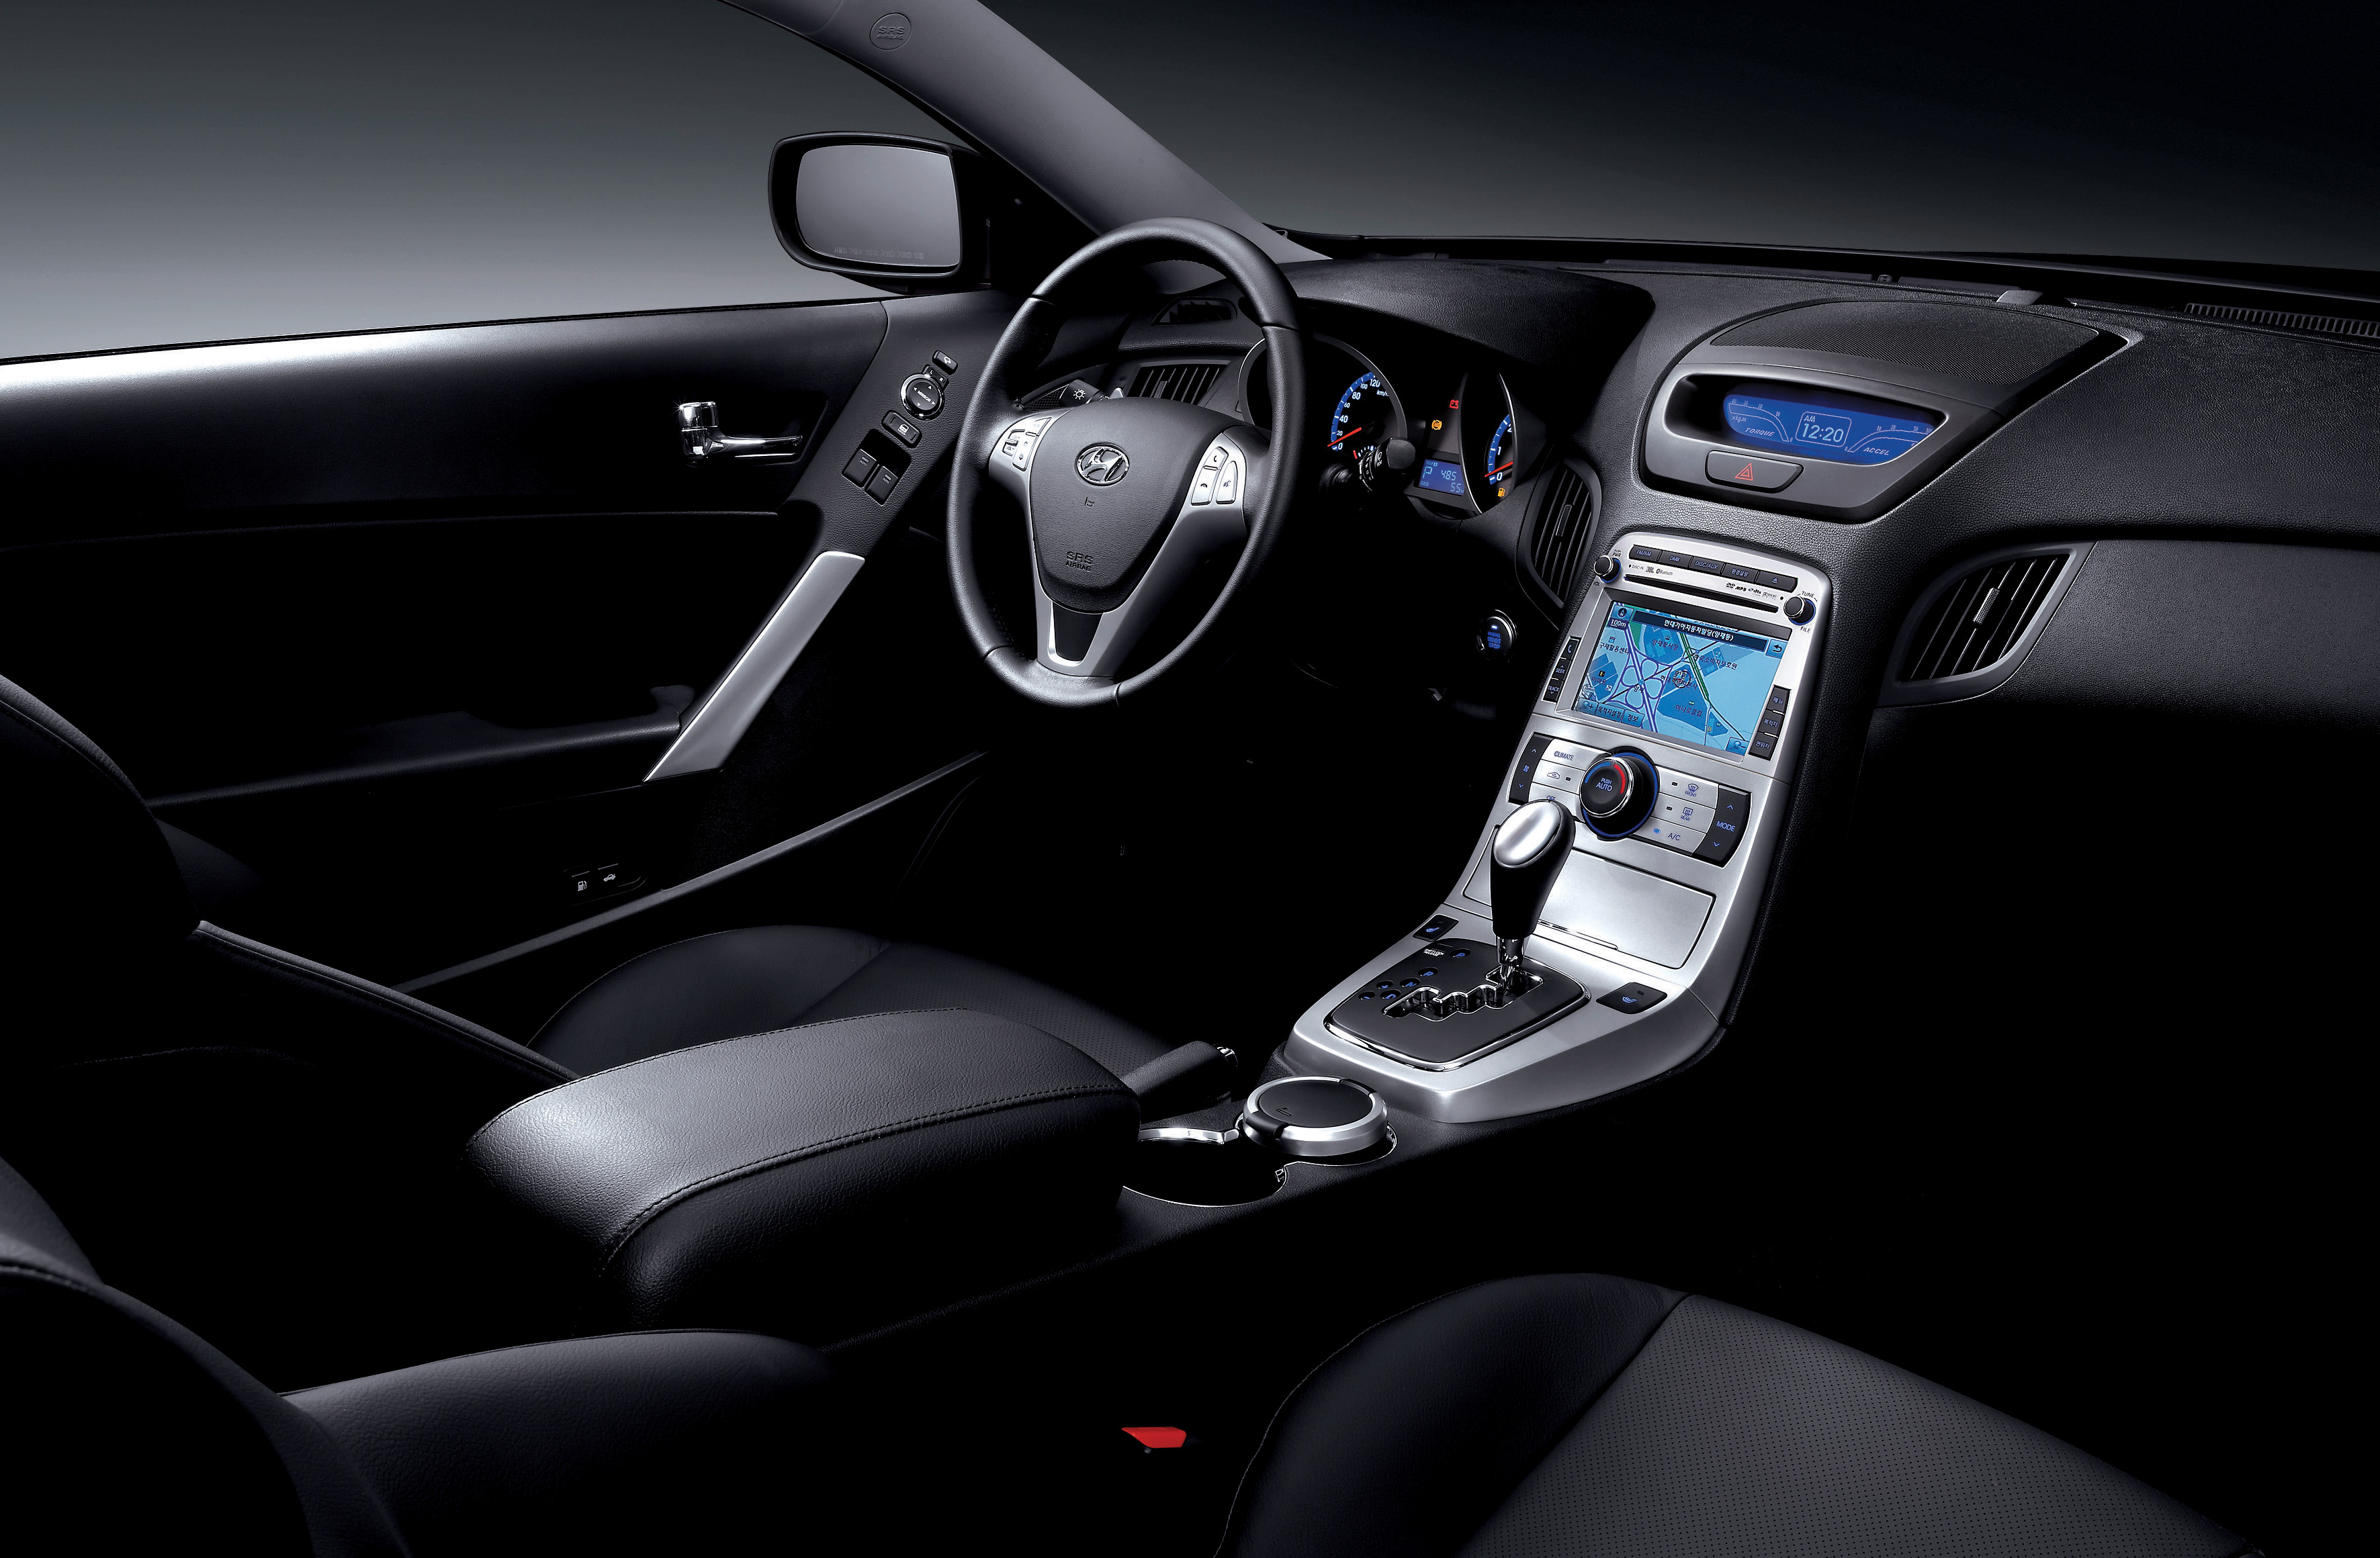 hyundai genesis coupe 2010 interior. Black Bedroom Furniture Sets. Home Design Ideas